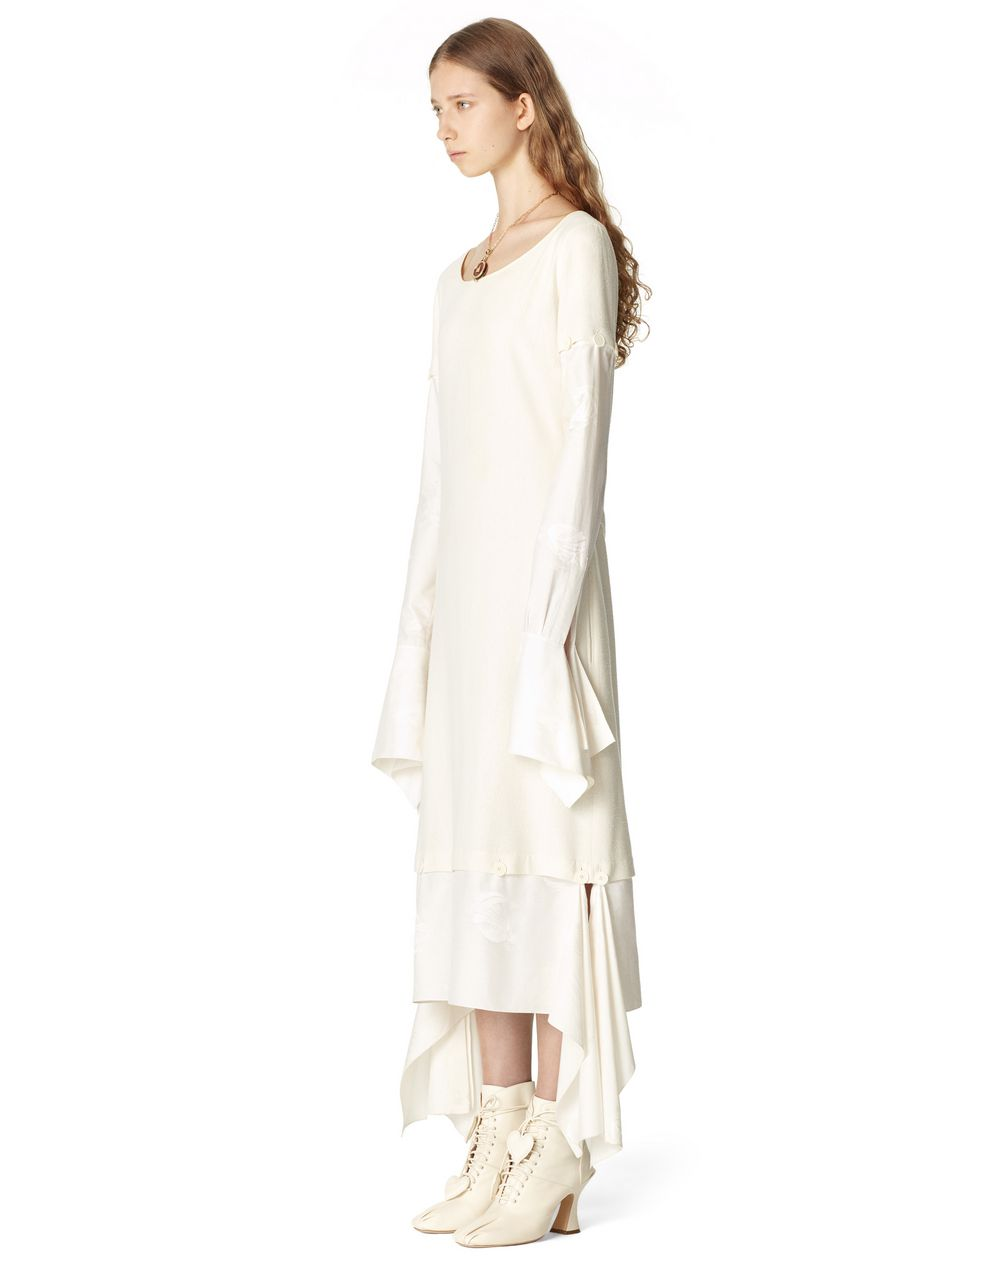 LONG MOTHER AND CHILD LOGO DRESS IN SILK - Lanvin